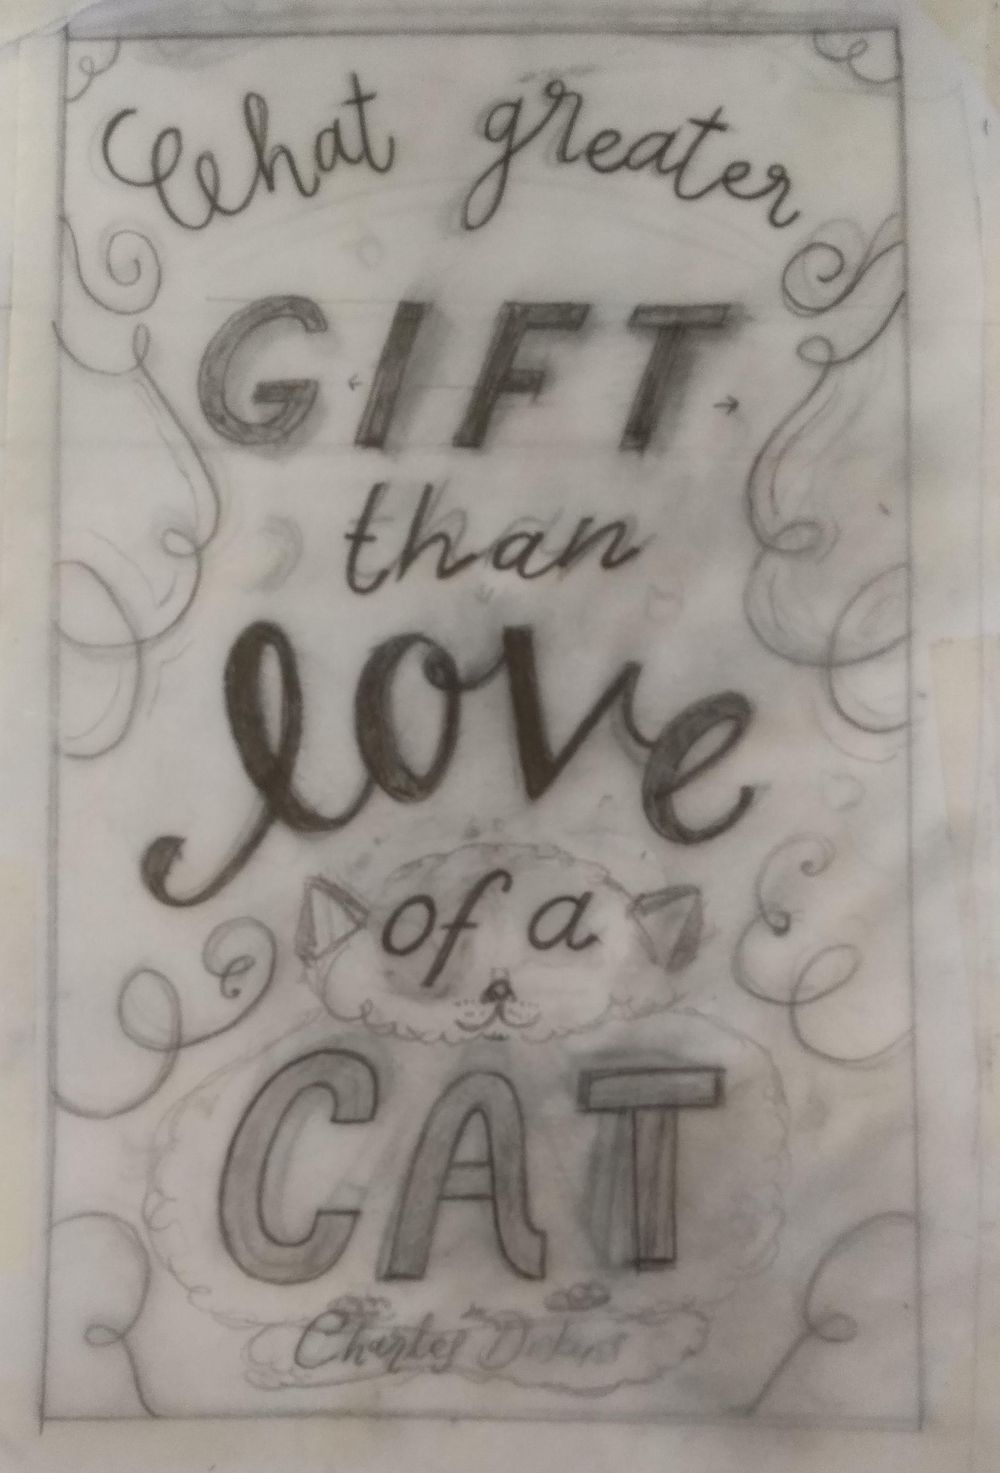 What greater gift than... - image 6 - student project